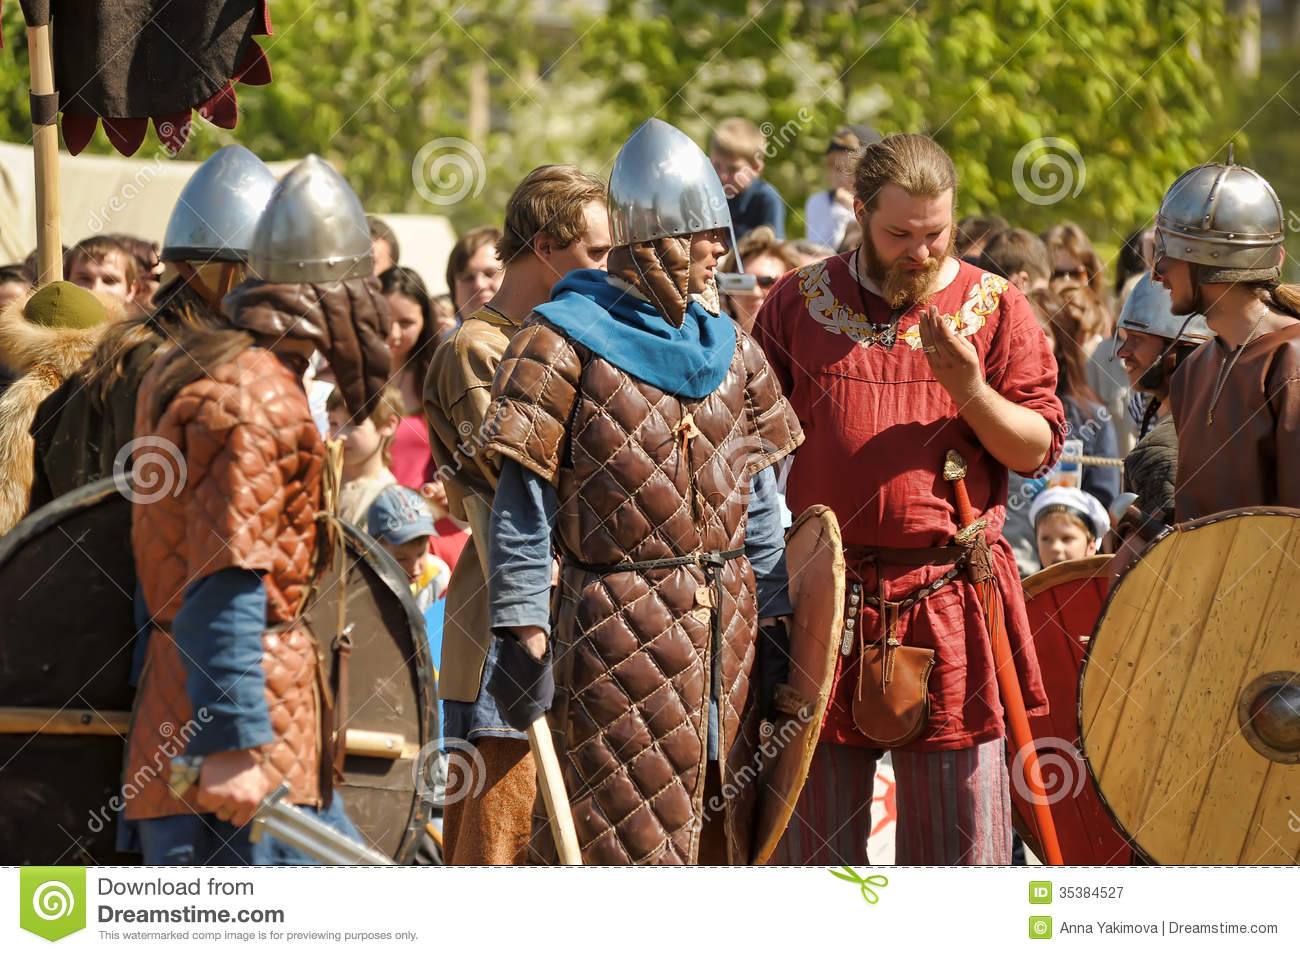 Festival early Middle Ages First Capital of Russia